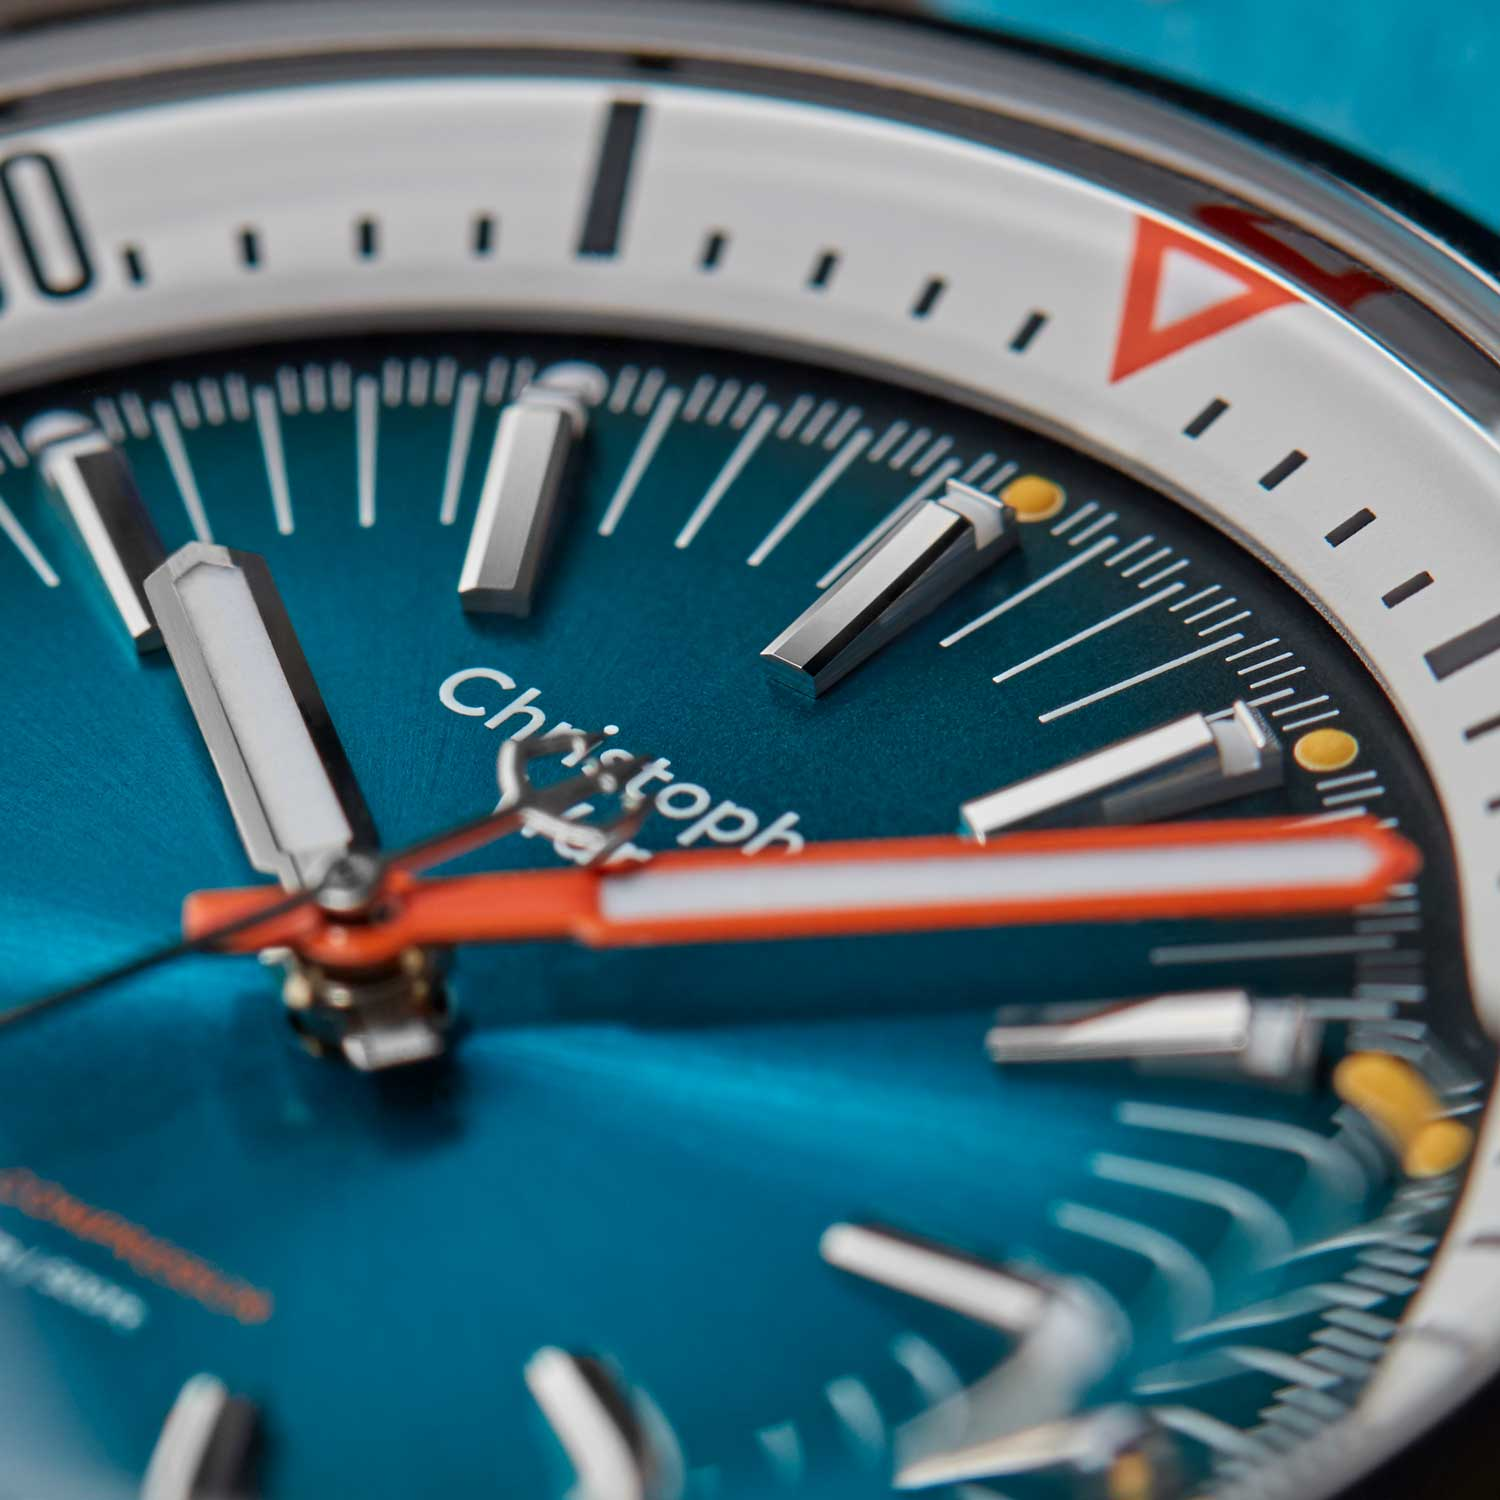 Dial details on the new Christopher Ward C65